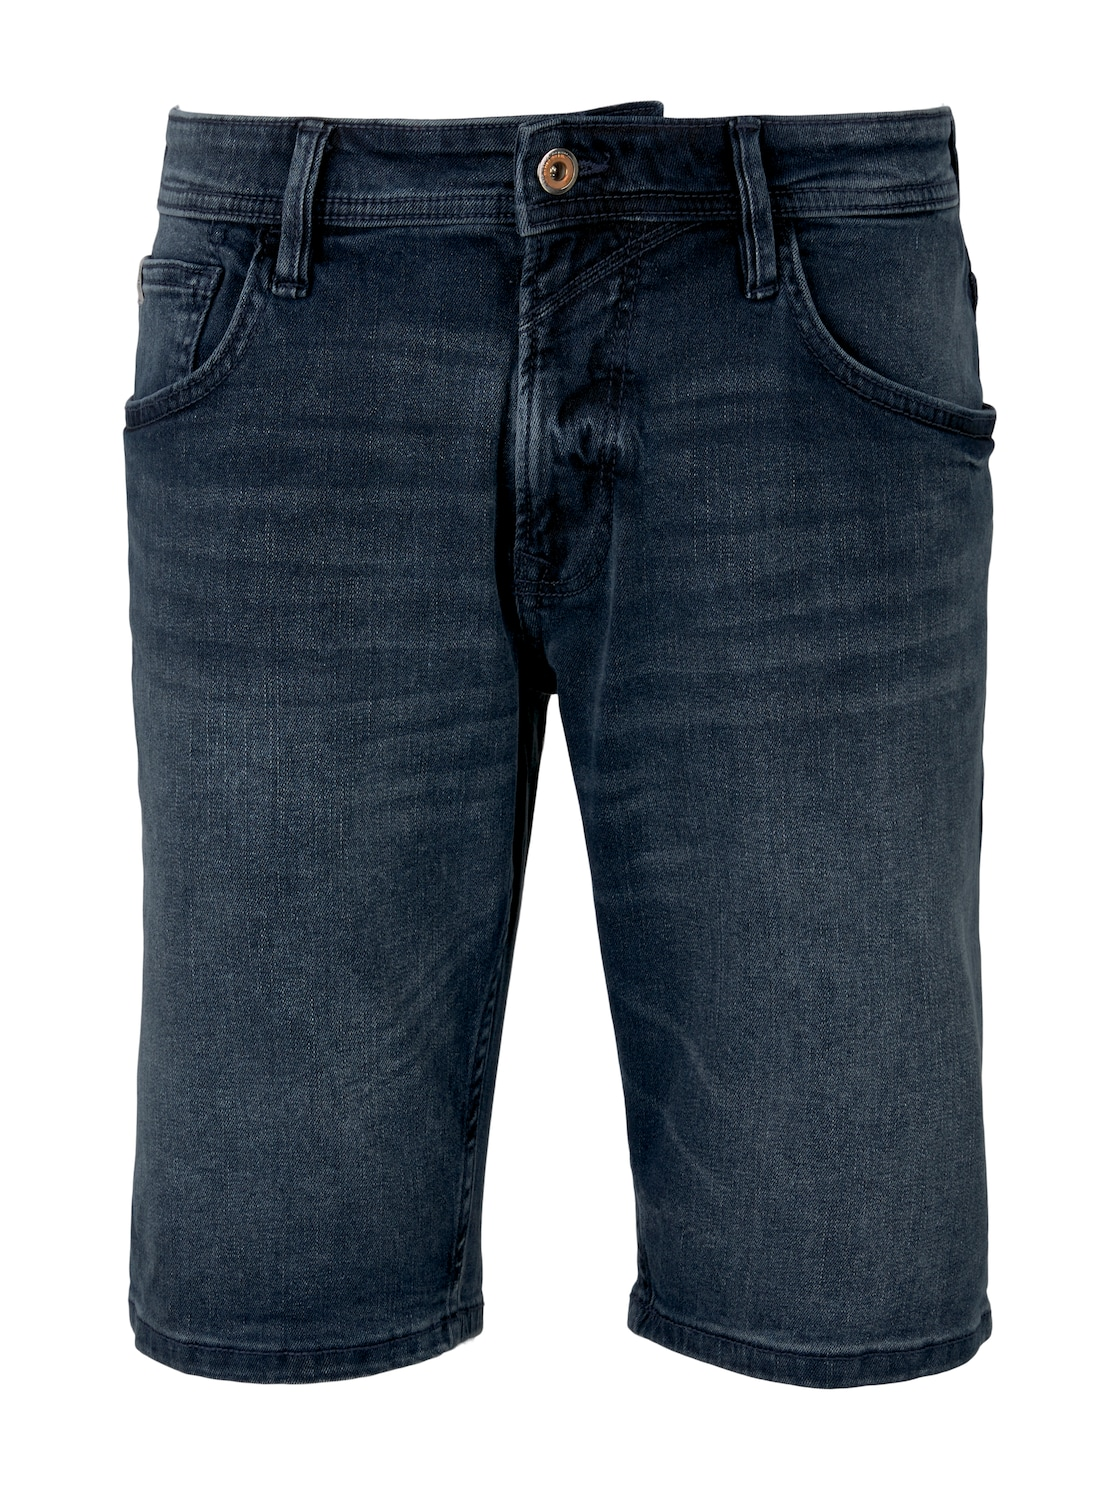 TOM TAILOR DENIM Herren Regular Fit Jeans-Shorts, schwarz/blau, Gr.S von Tom Tailor Denim